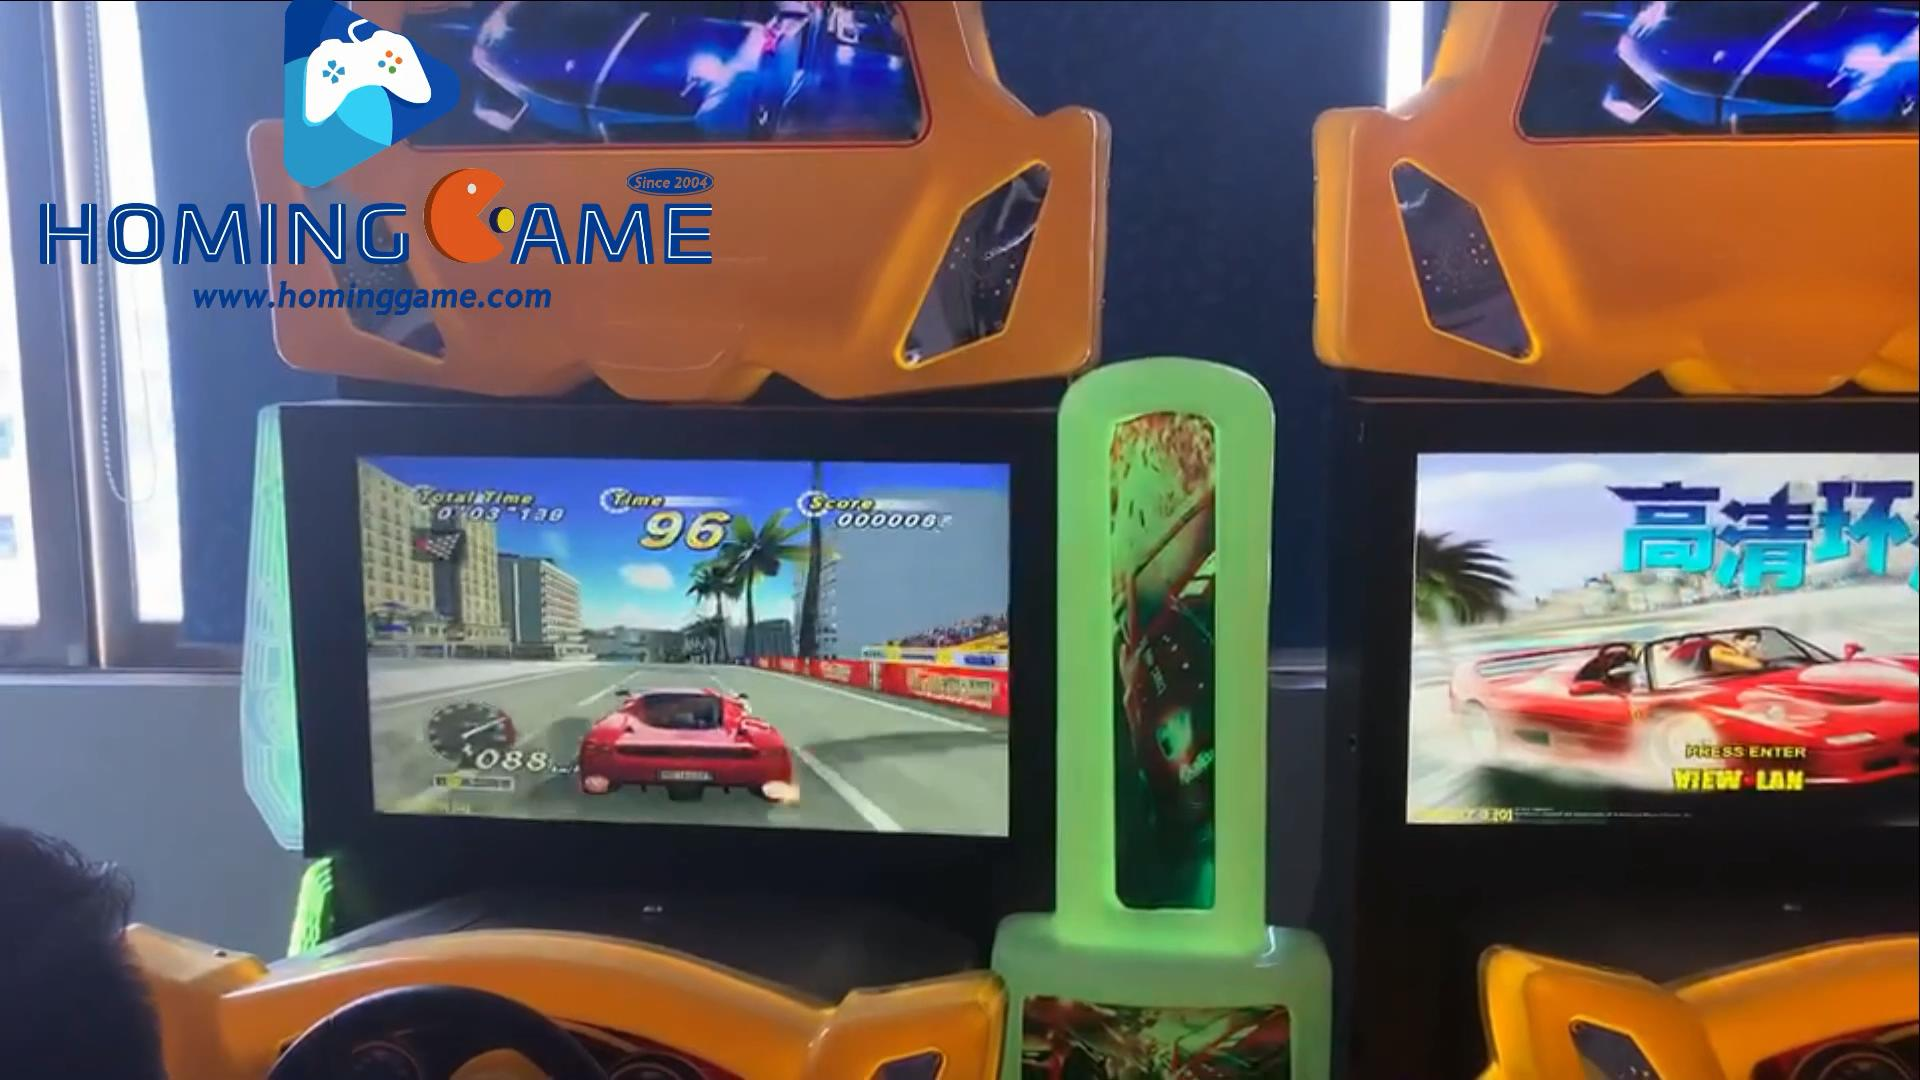 hd racing car,hd outrun racing car game machine,outrun racing car arcade game machine,3d outrun racing car simulator game machine,outrun racing car game machines,outrun racing car arcade simulator game machine,hd racing car game mchine,hd racing car game,racing car game machine,car game,game machine,arcade game machine,coin operated game machine,indoor game machine,electrical game machine,amusement park game equipment,indoor game,slot game machine,entertainment game machine,amusement park game machine,coin games,racing game,racing bike game machine,racing motorbike game machine,coin operated racing car arcade game machine,kids game machine,arcade video game machine,video game machine,video game,arcade video game